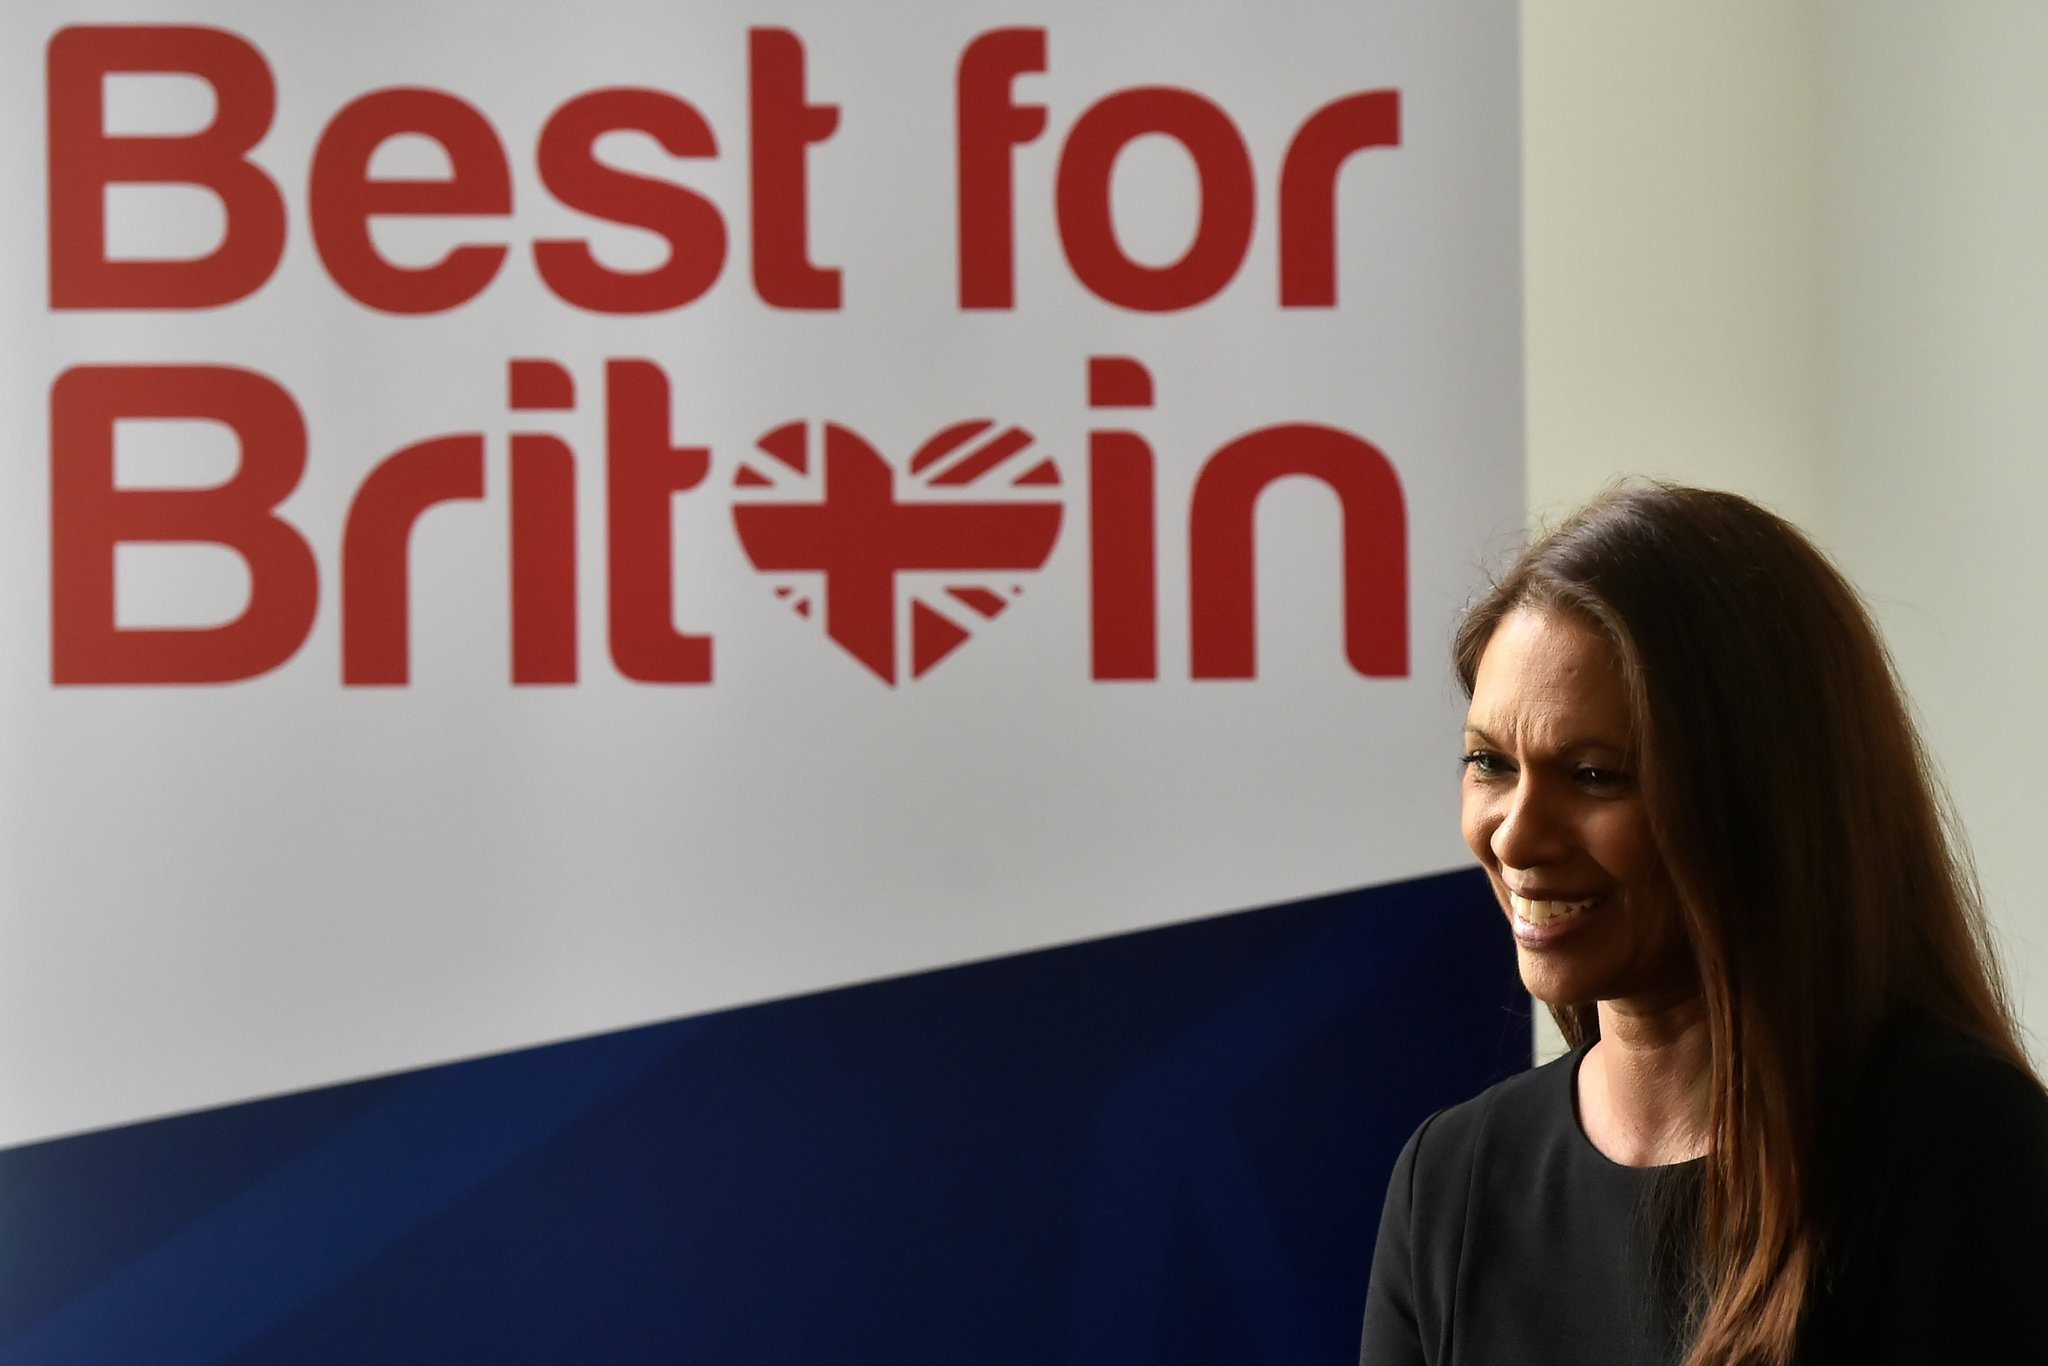 Gina Miller launched her Best for Britain campaign yesterday.